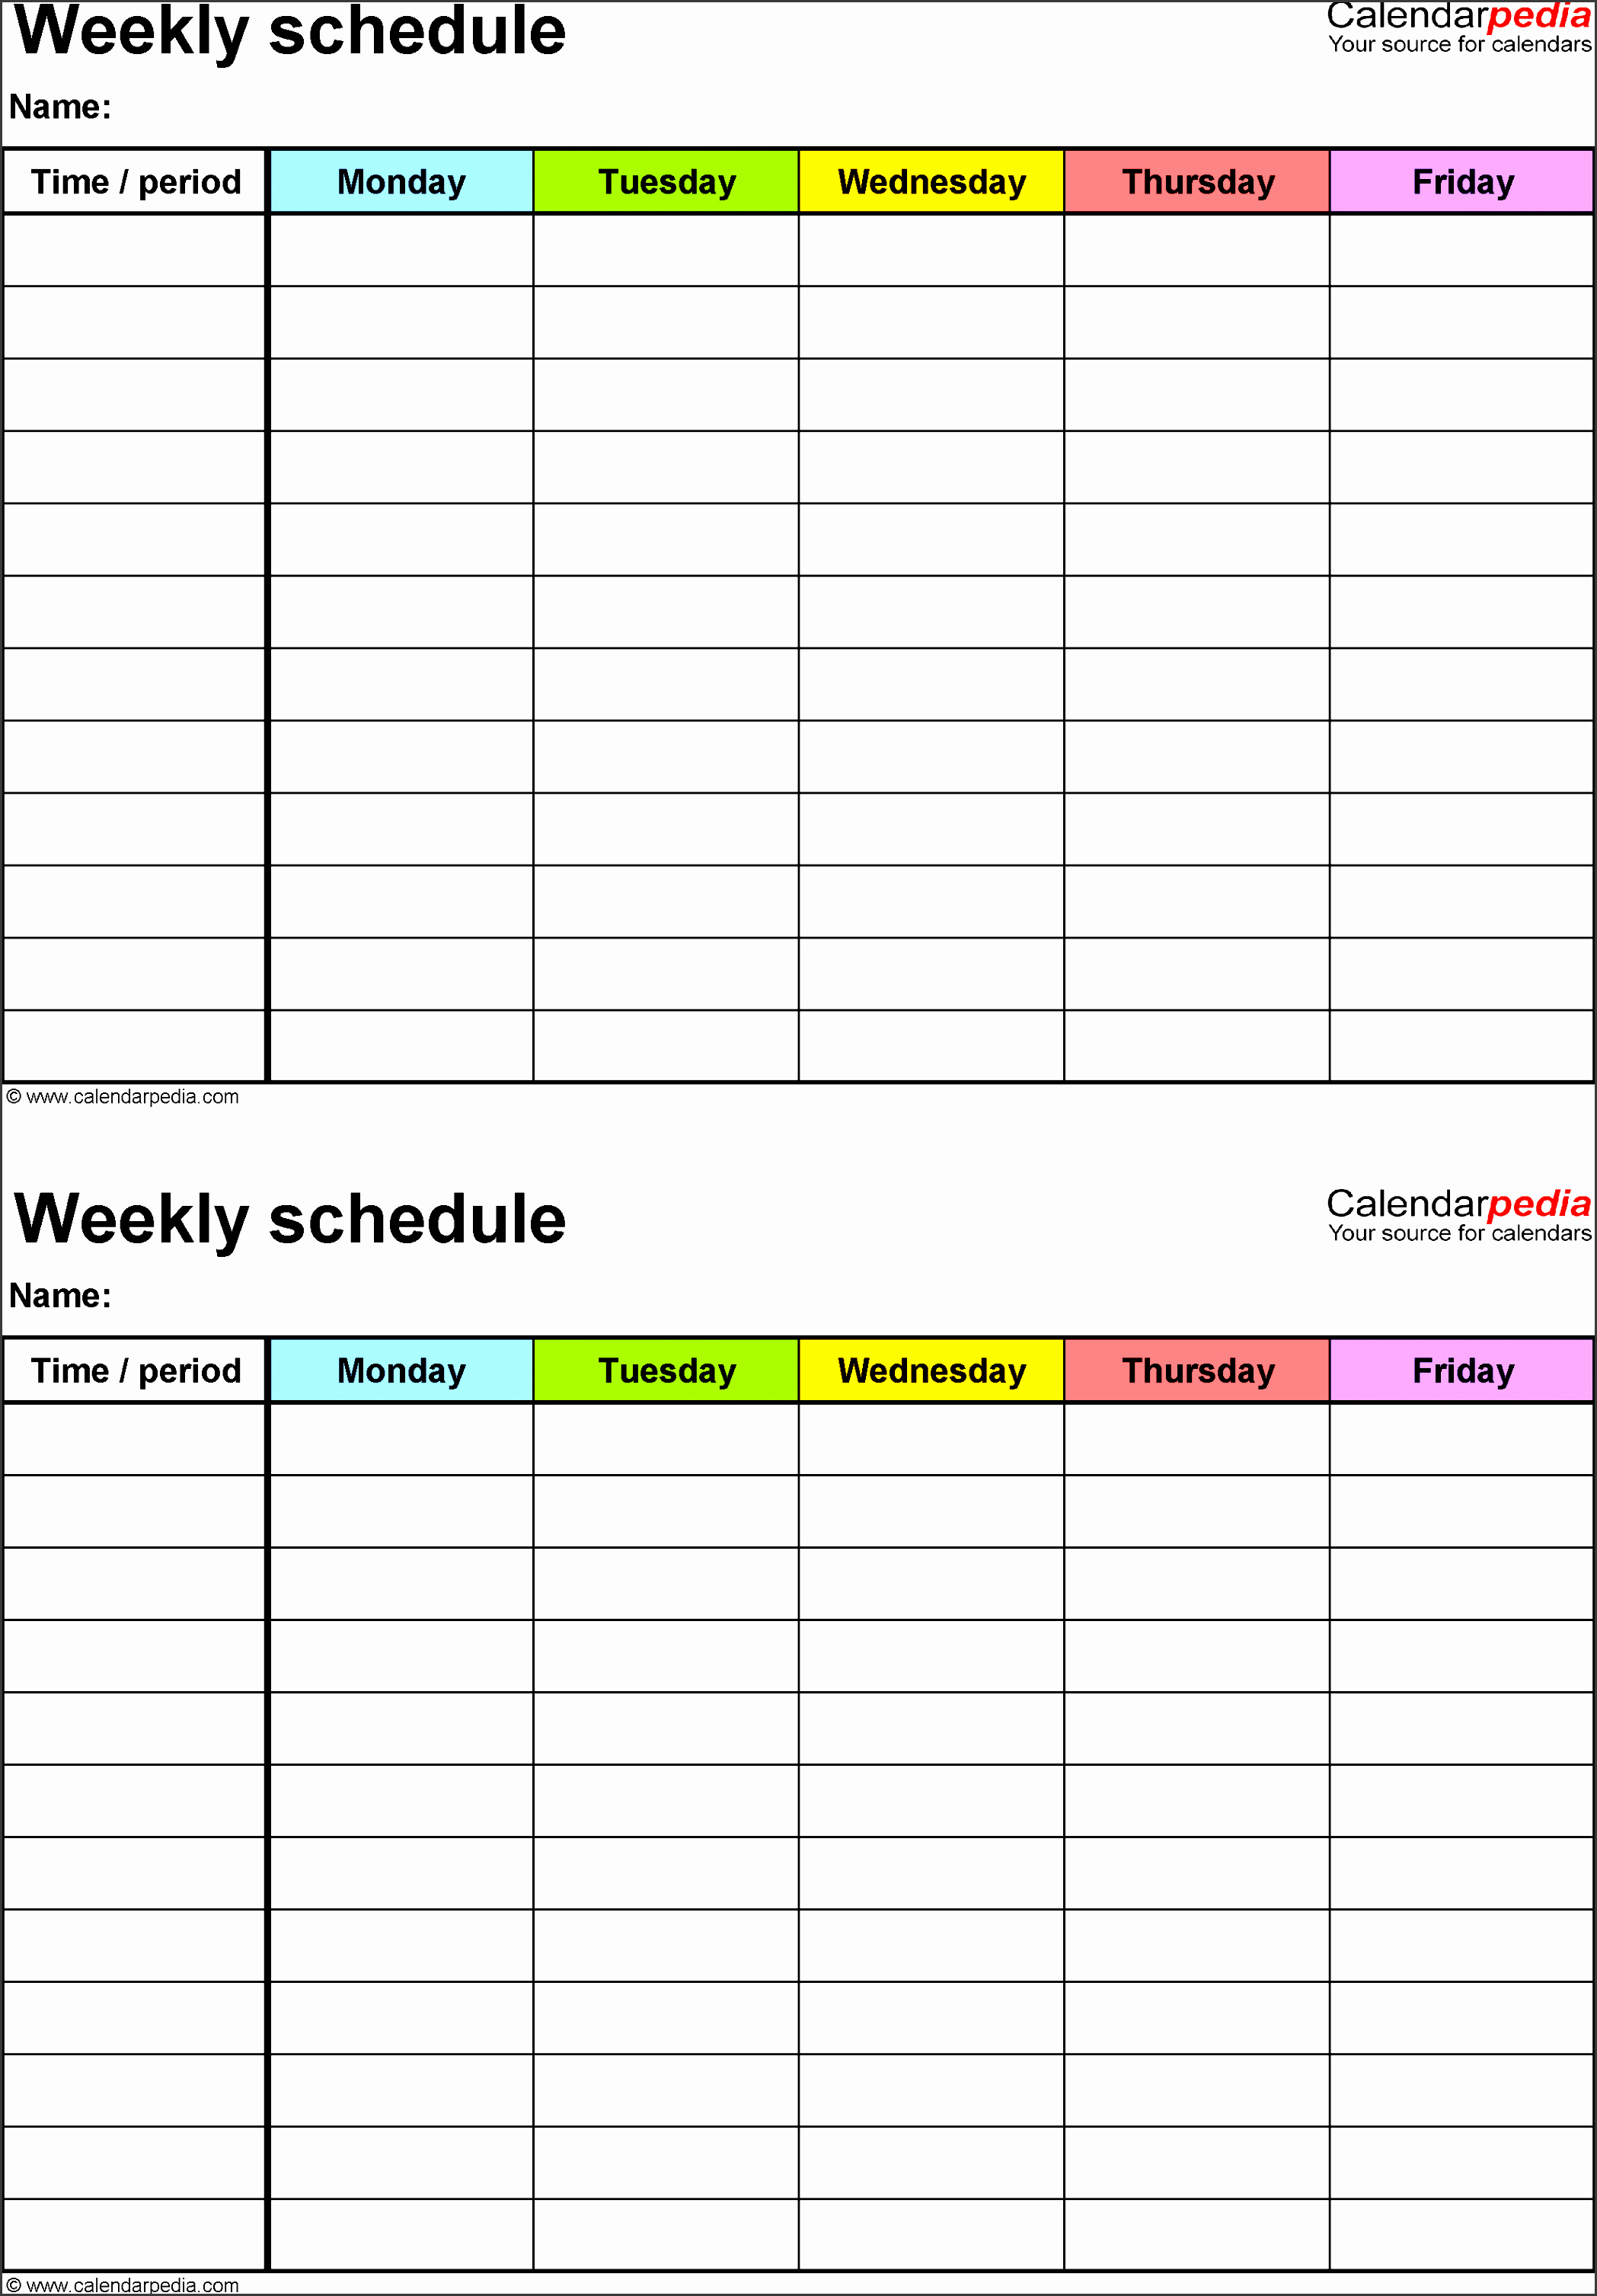 Daily Schedule Template Excel Inspirational 10 How to Create Daily Work Schedule In Excel